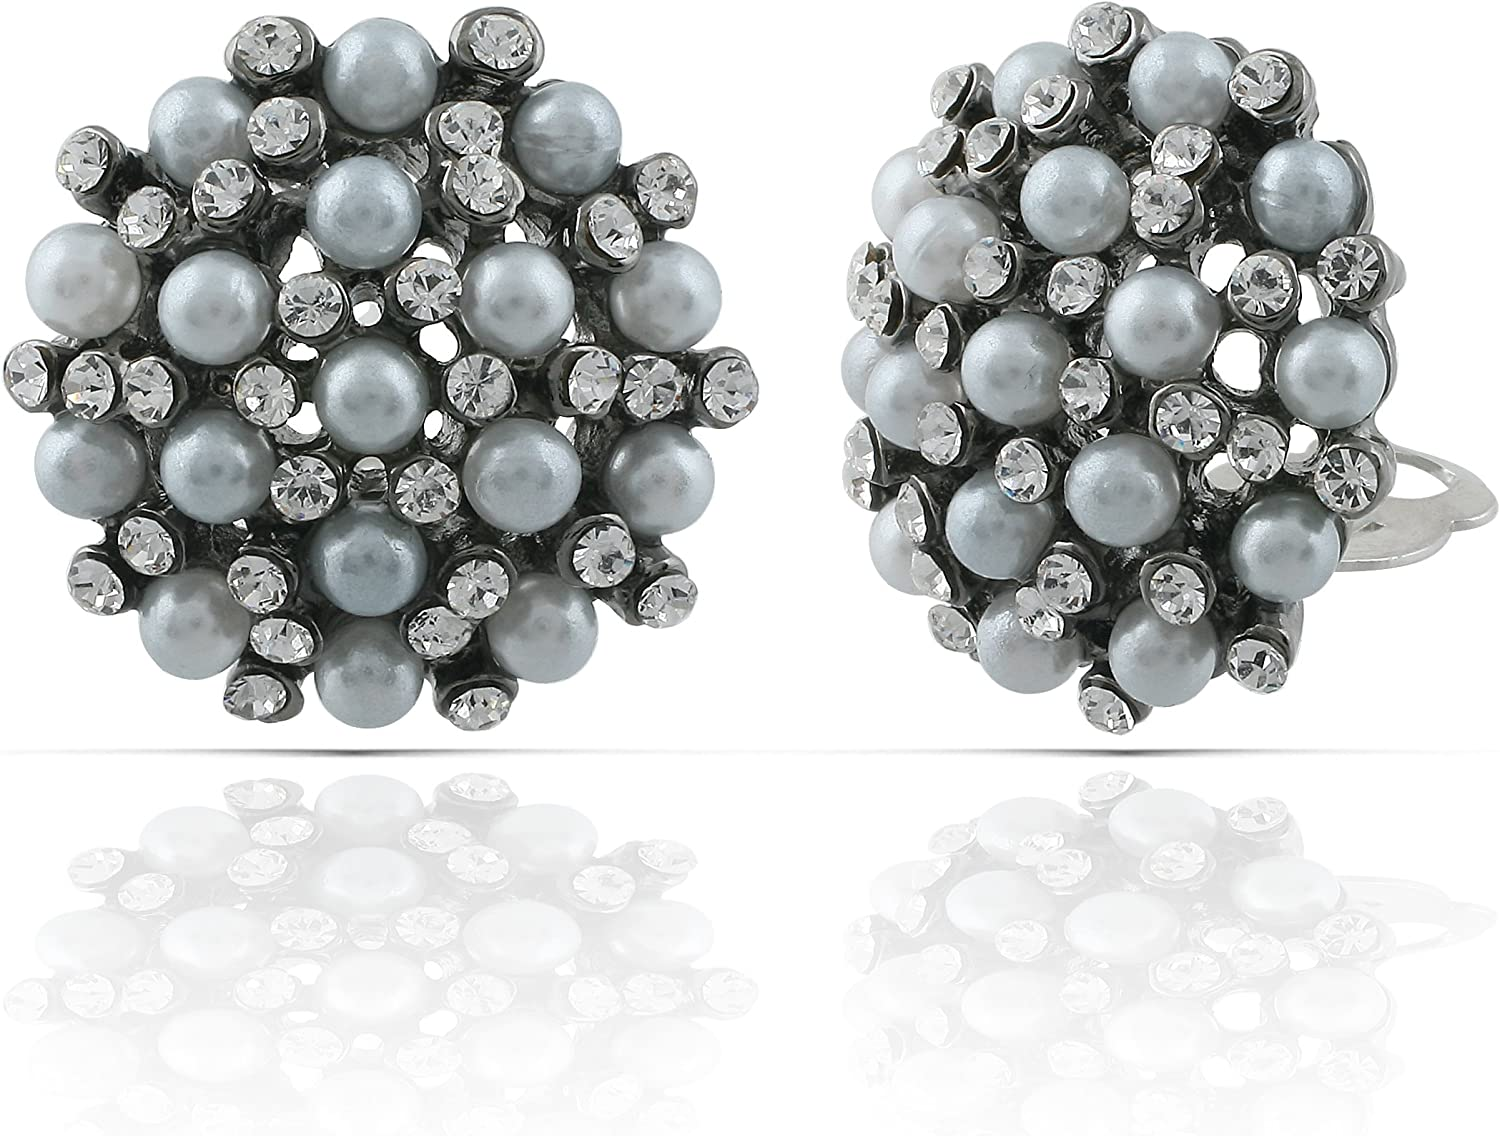 JanKuo Jewelry Black Rhodium Plated Vintage Style Simulated Pearls with Crystal Stones Clip On Earrings